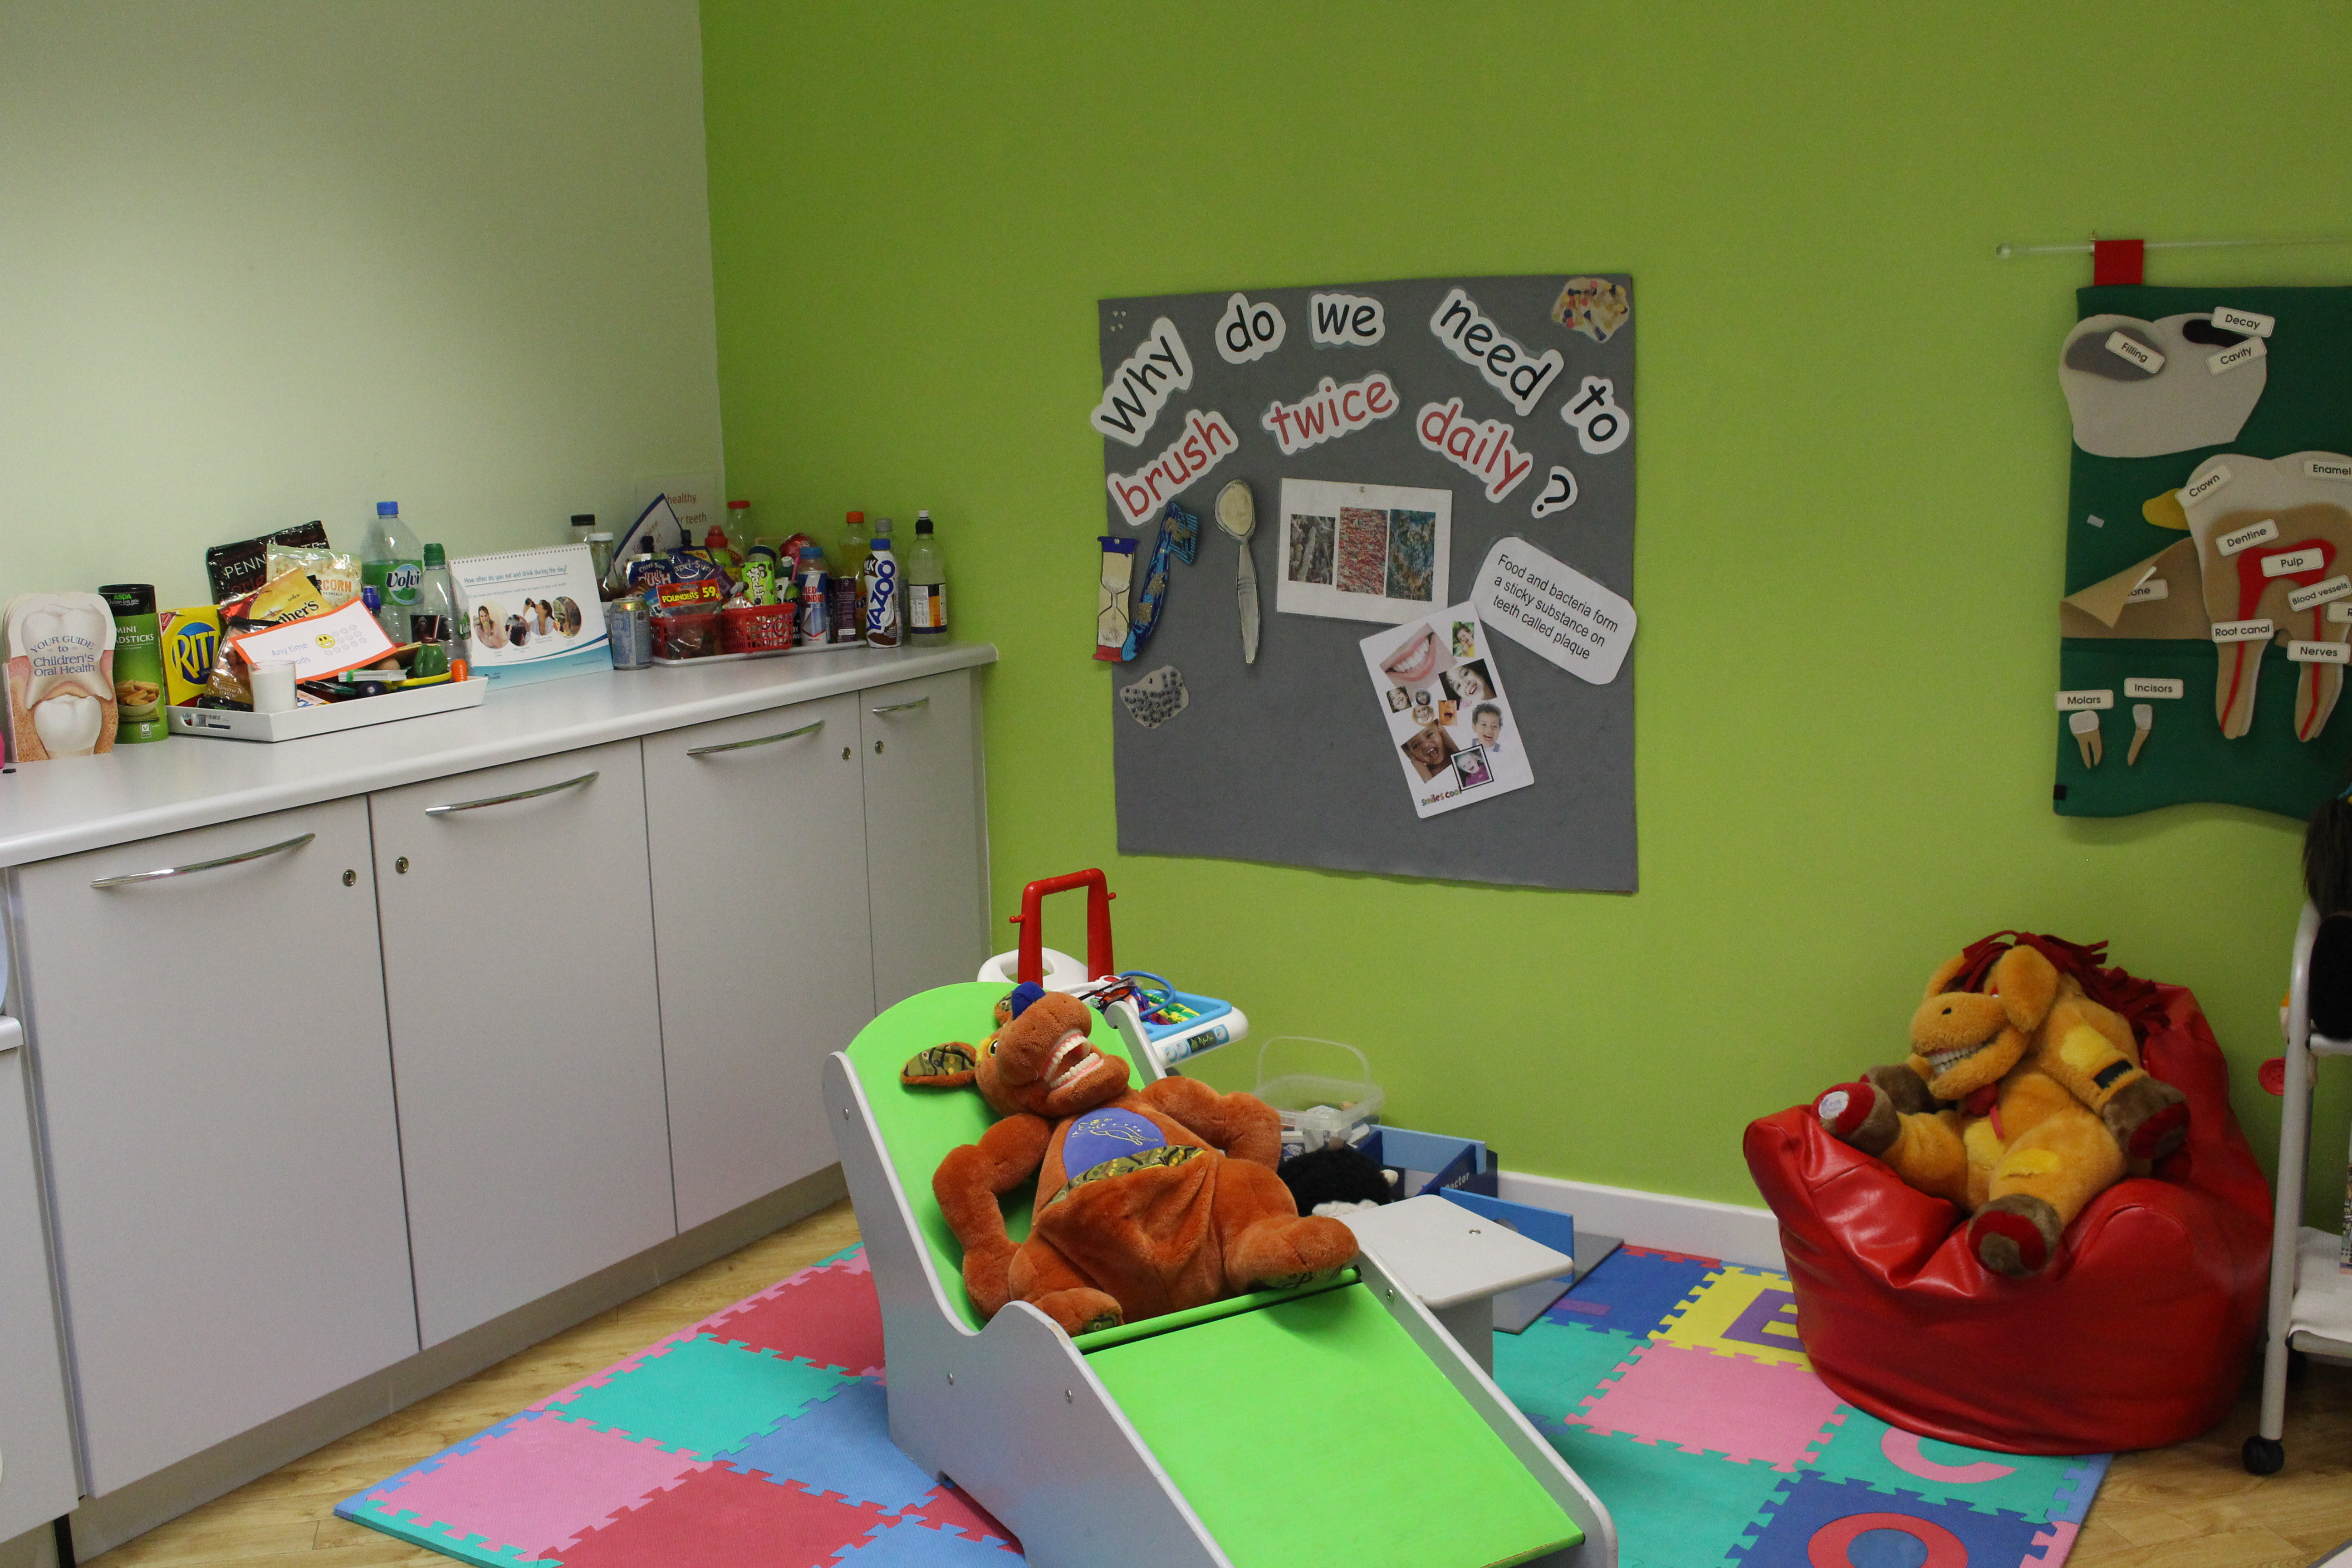 Smilescool Play Area